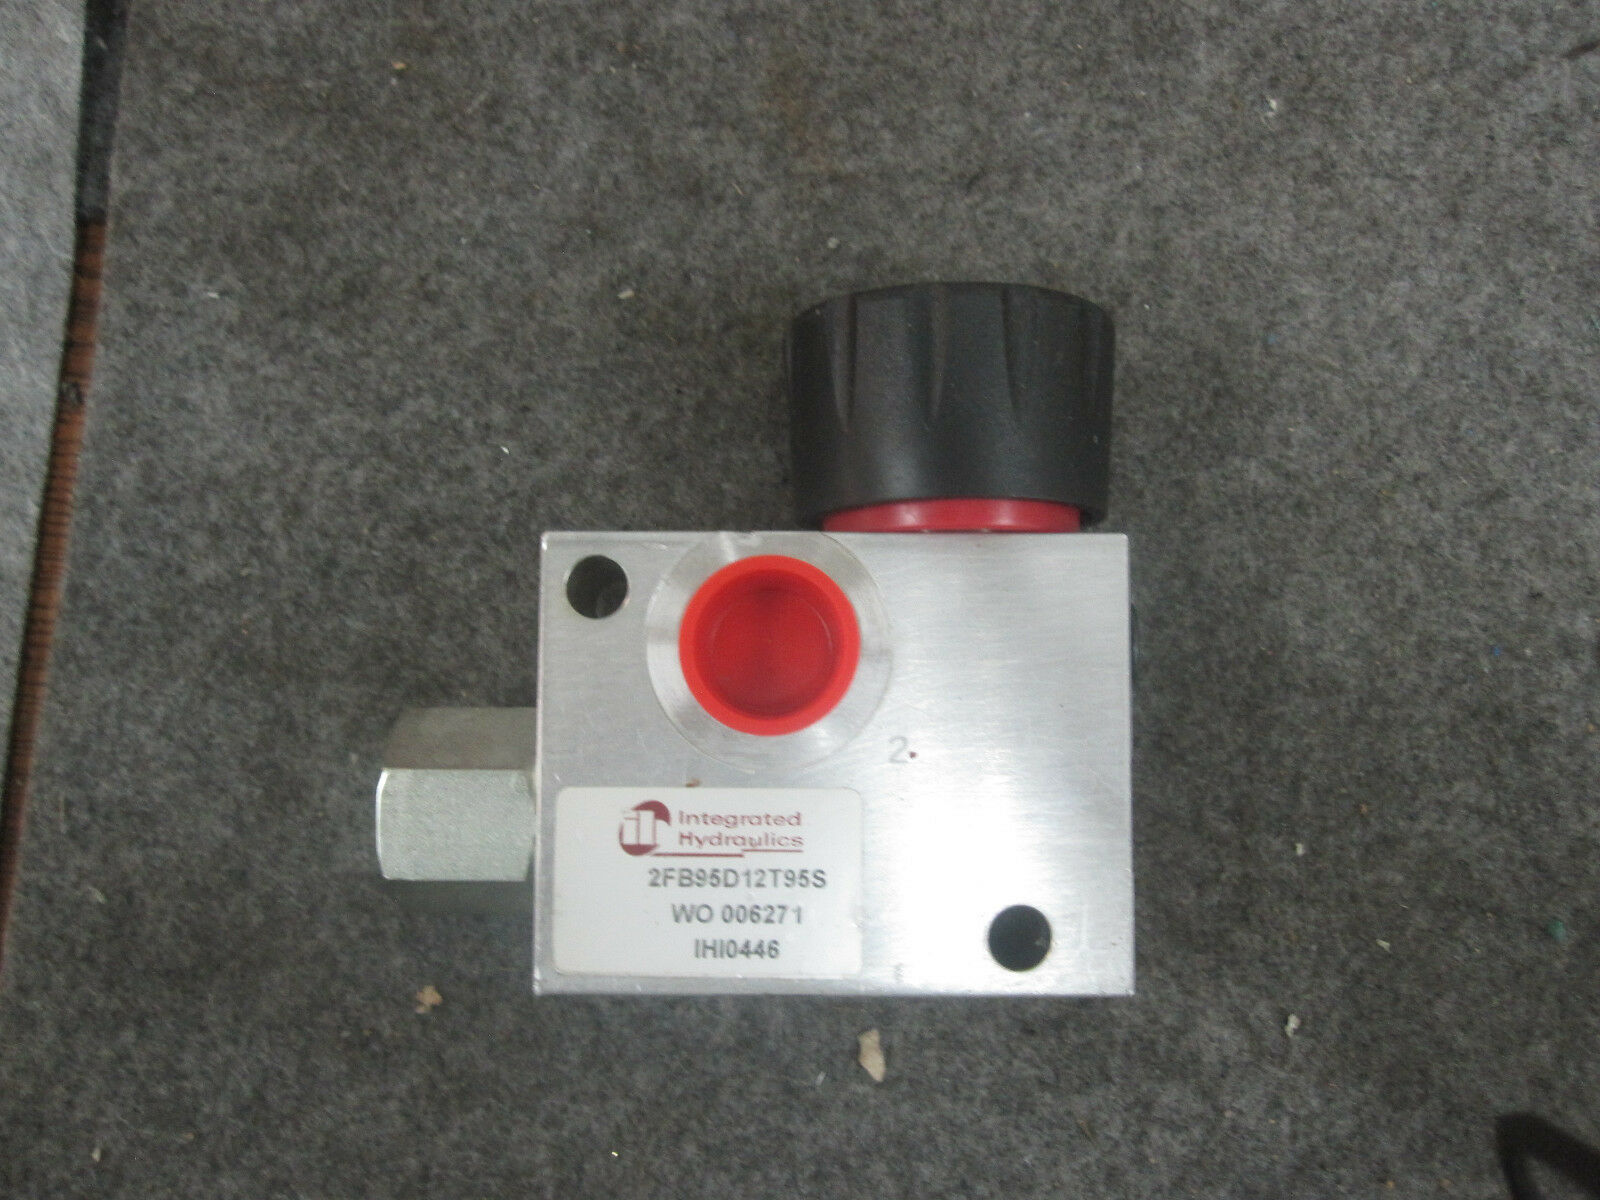 Integrated Hydraulics 2FB95D12T95S Flow Control Valve WO 006271 IHI0446